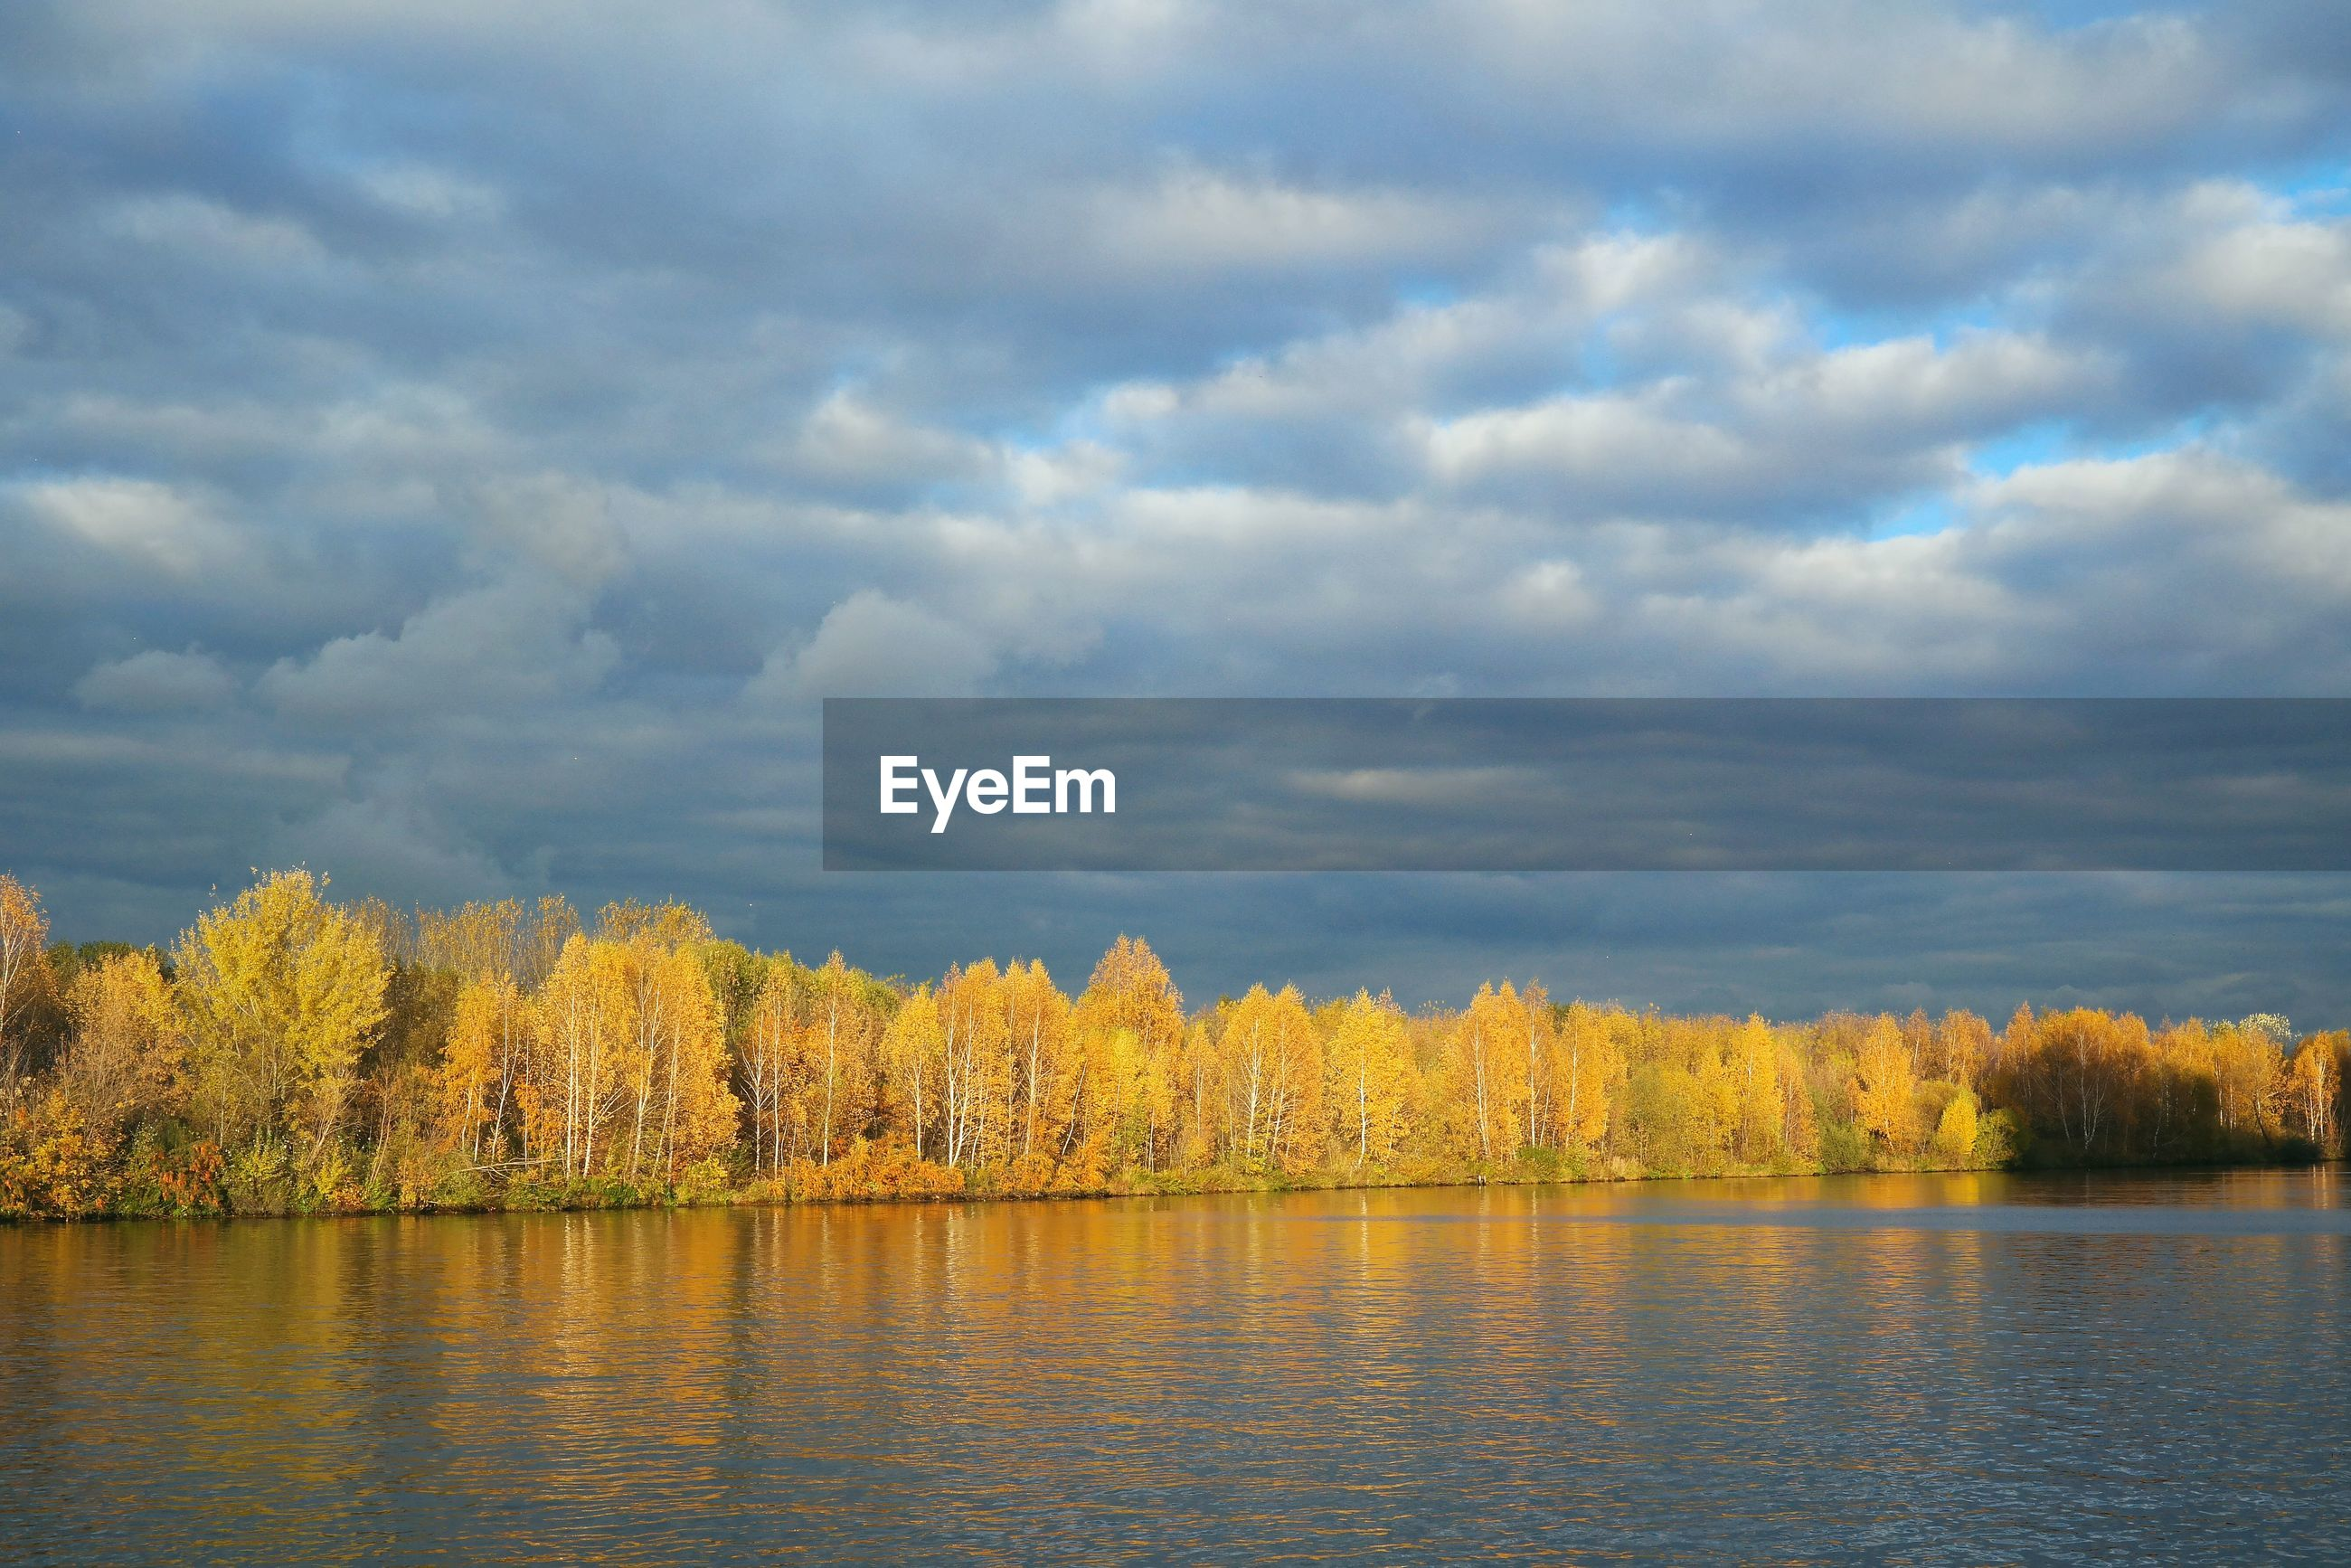 LAKE BY TREES AGAINST SKY